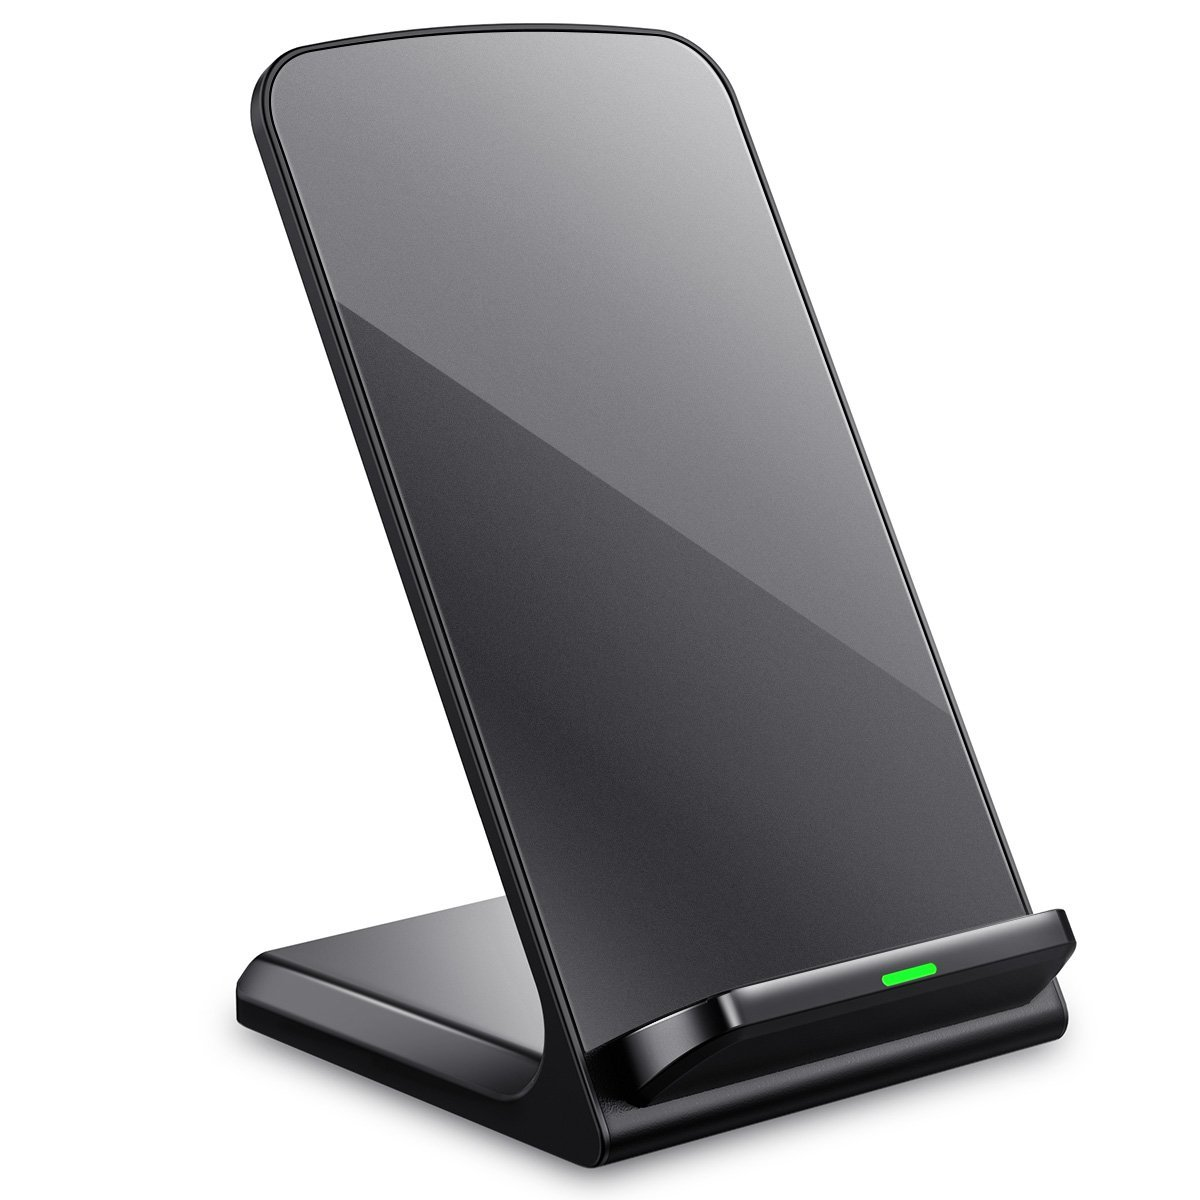 Turbot wireless charging stand